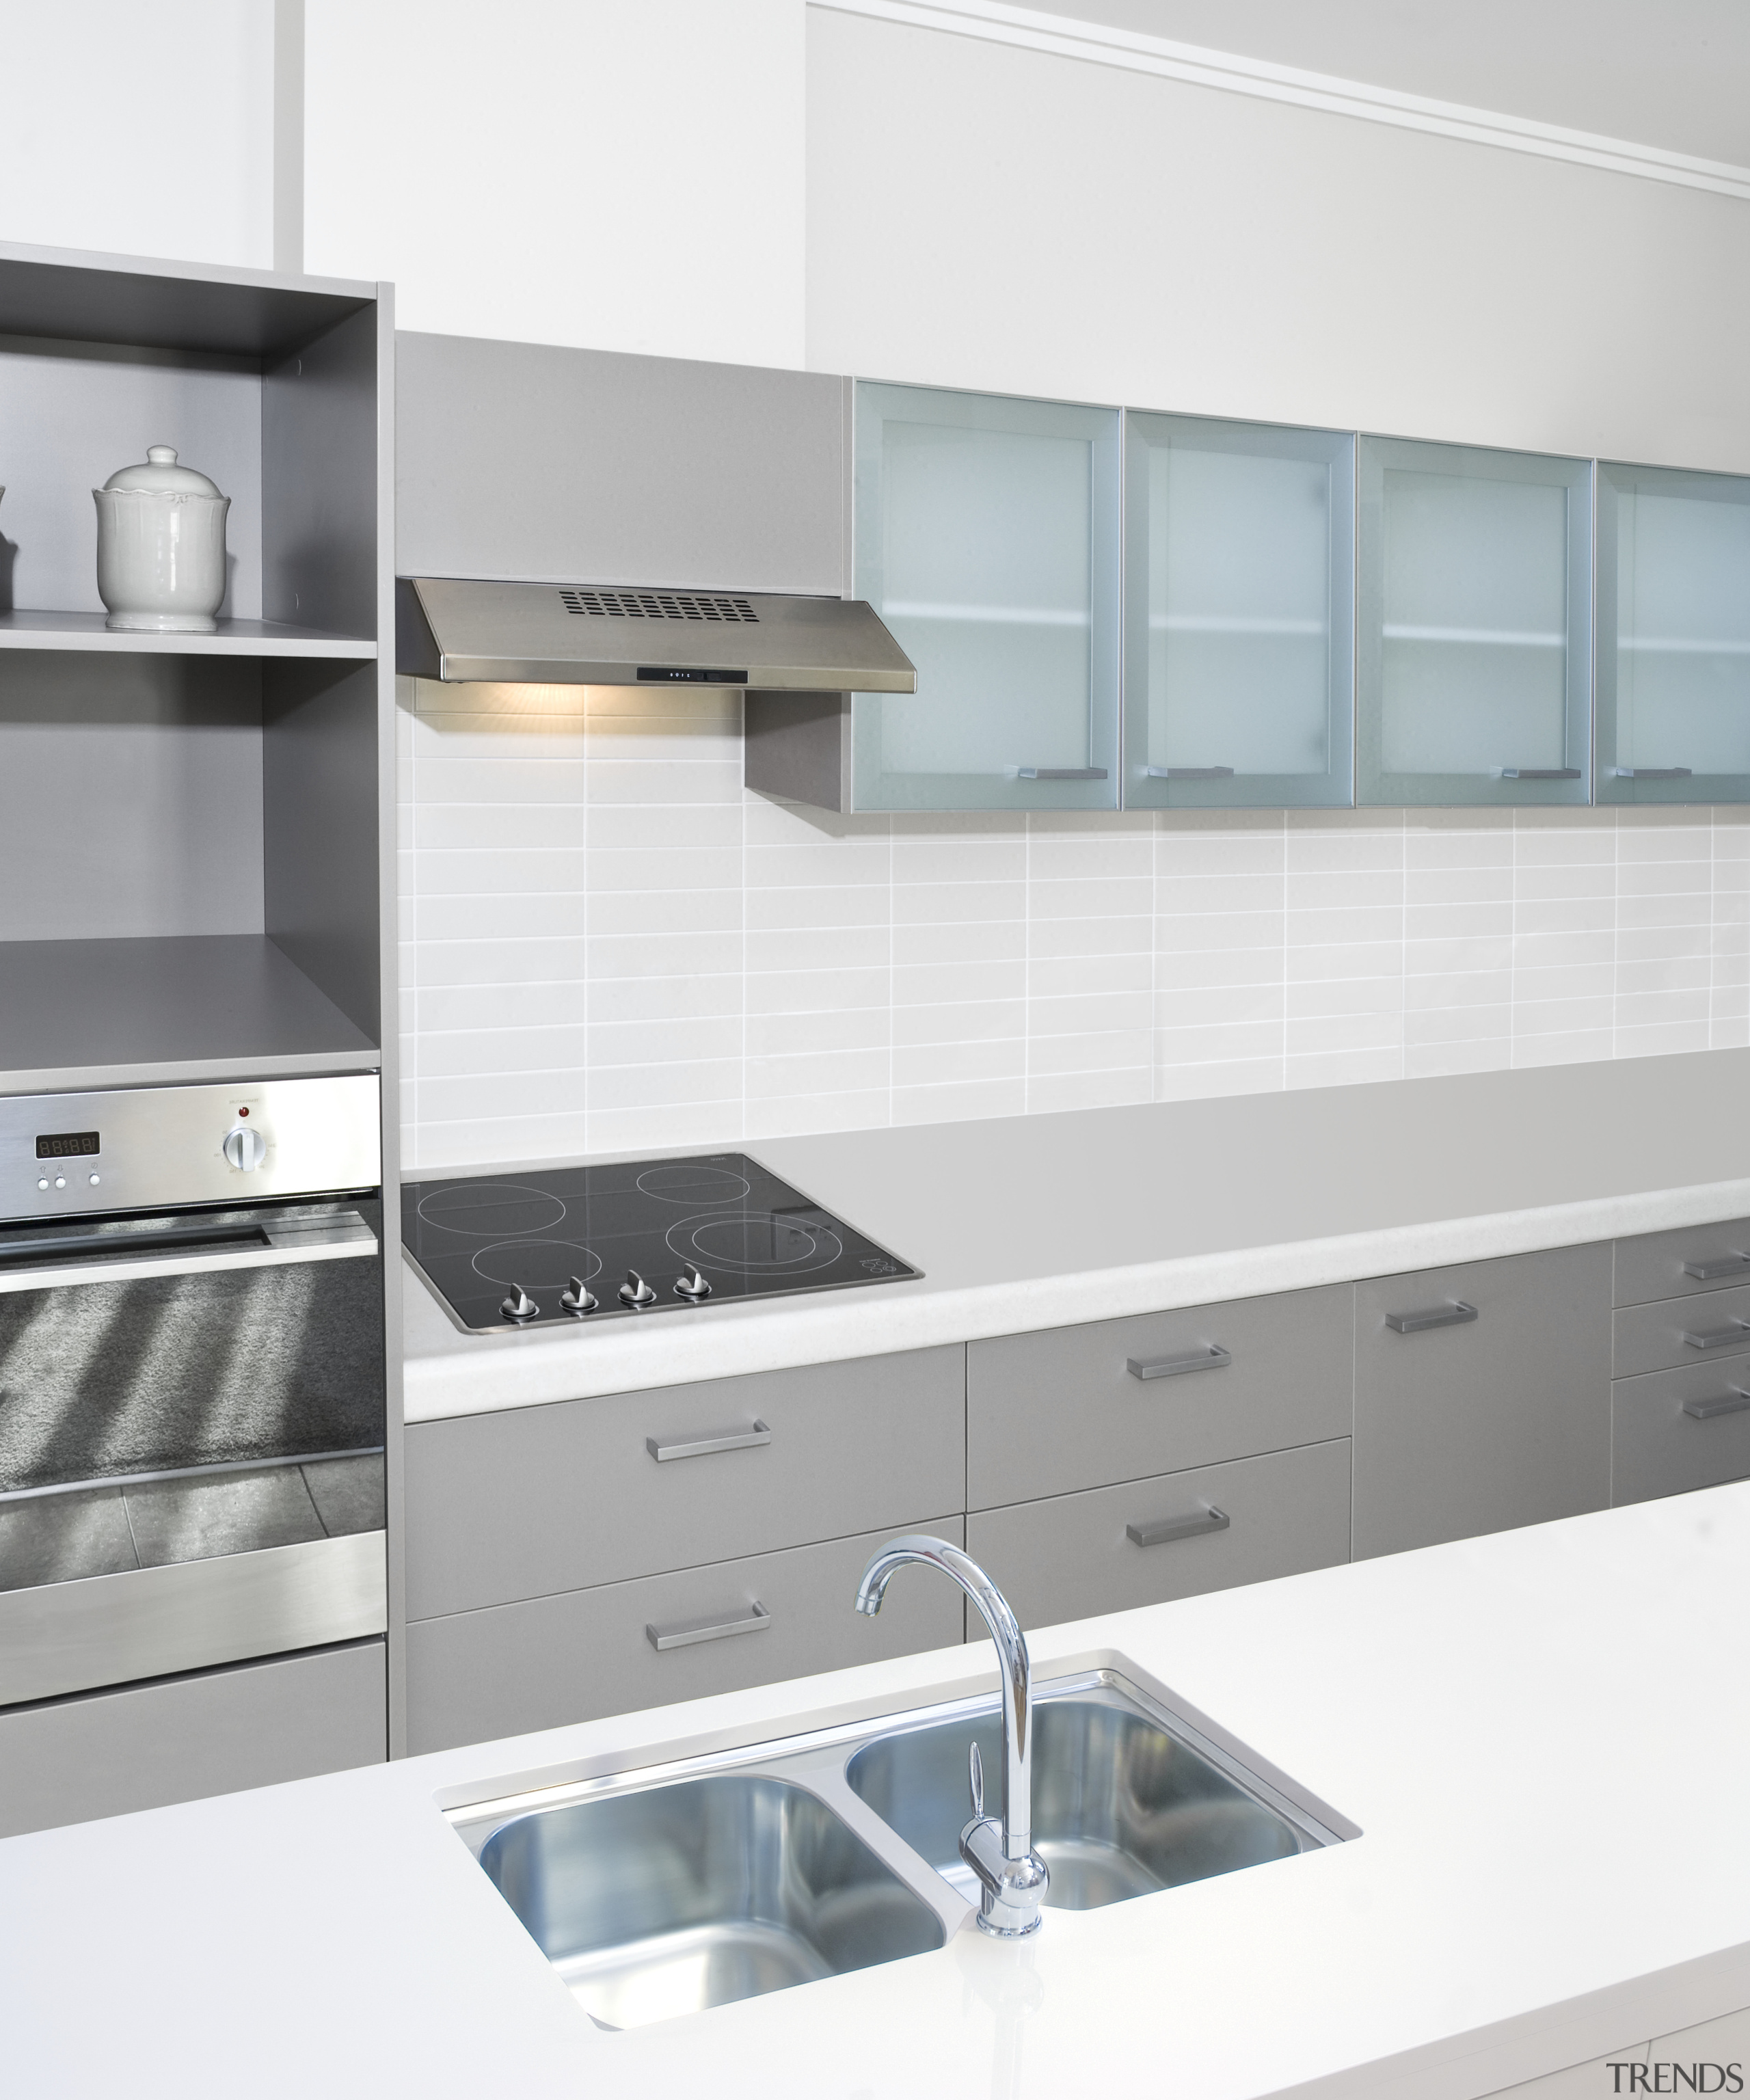 view of a kitchen which features Oliveri's new countertop, kitchen, kitchen stove, product, product design, white, gray